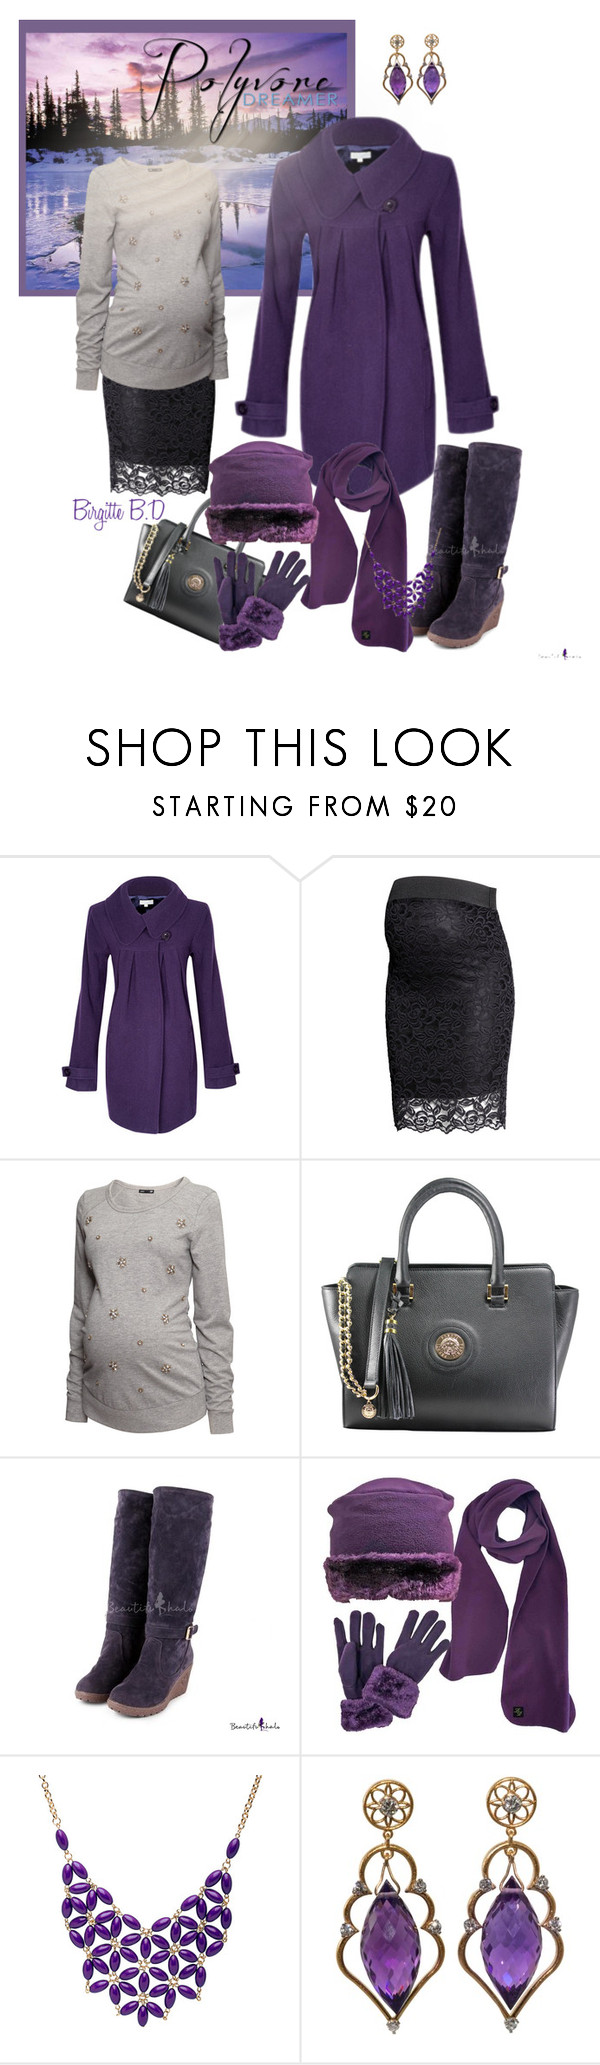 """""""My Purple Advent 2015"""" by ragnhild-bergan ❤ liked on Polyvore featuring H&M and Alexa Starr"""